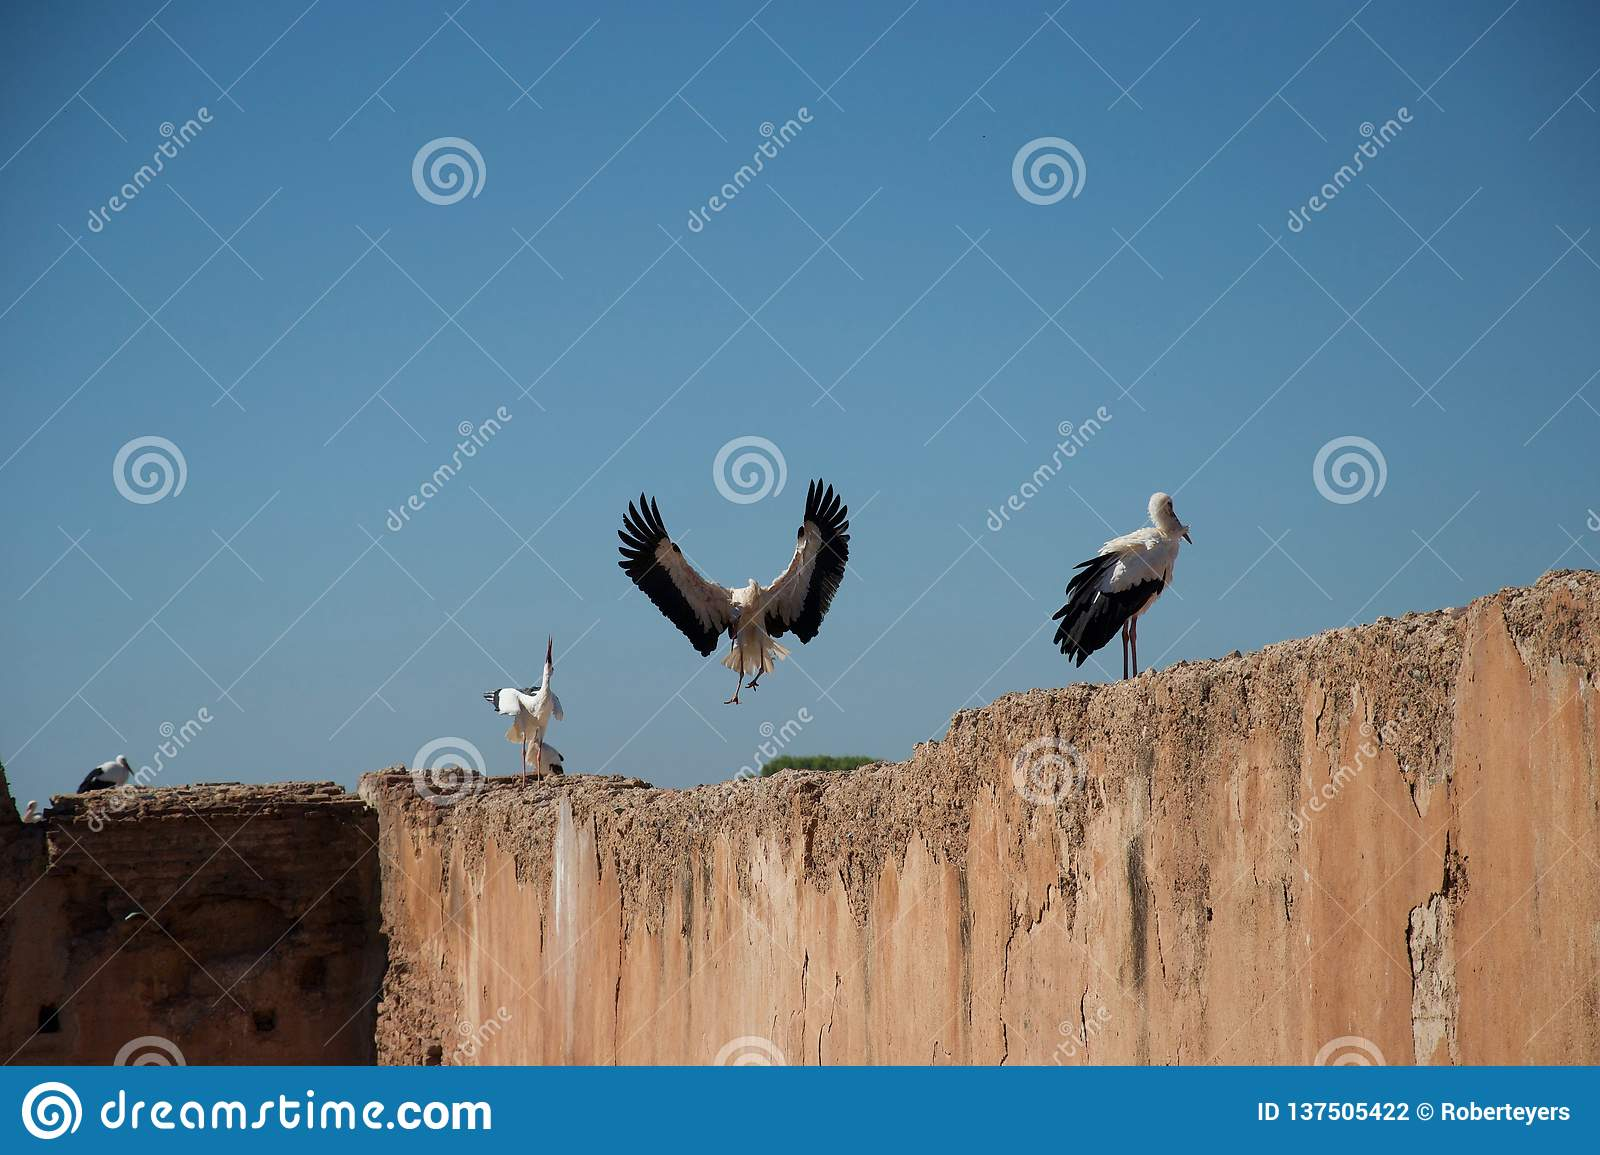 Stork in flight and storks on wall